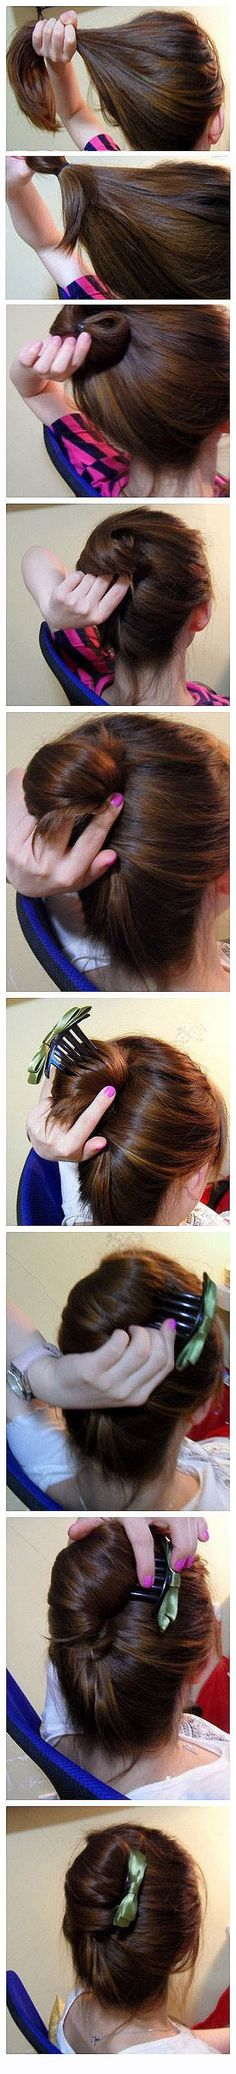 17 Air hostess hairstyles you can do at home  Hairstyle Monkey